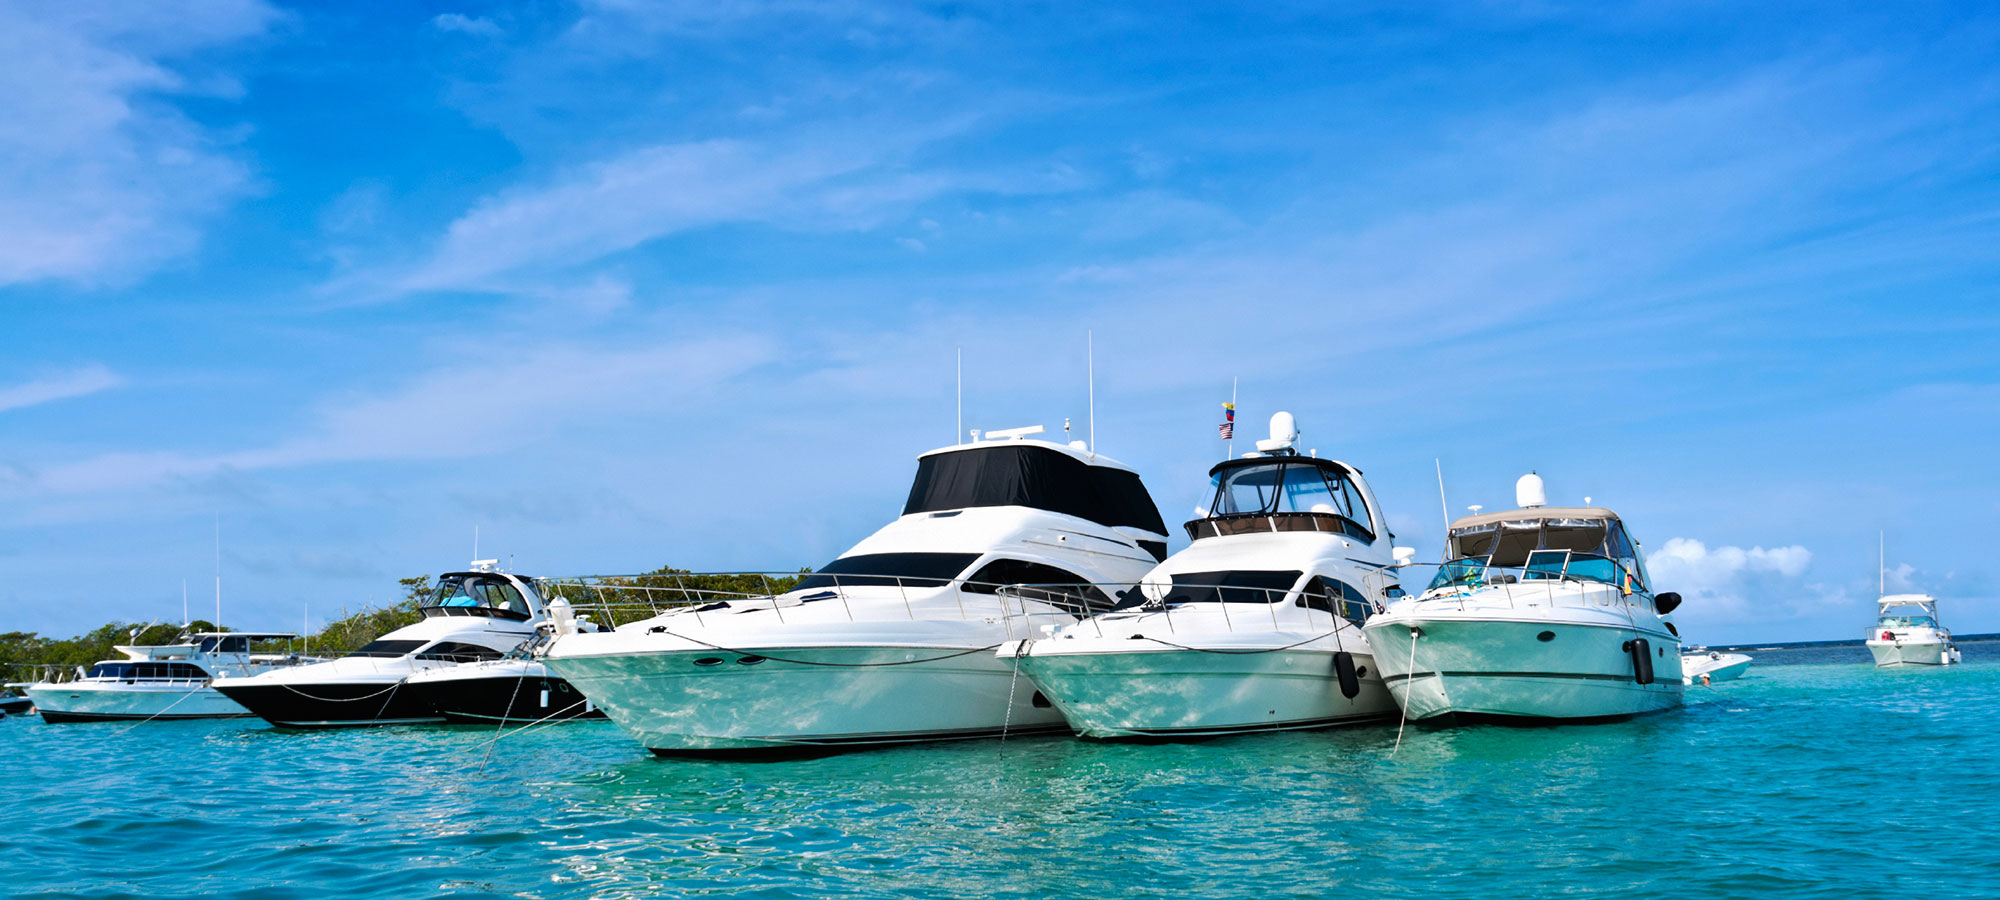 Seagate-Suites-boats-in-water